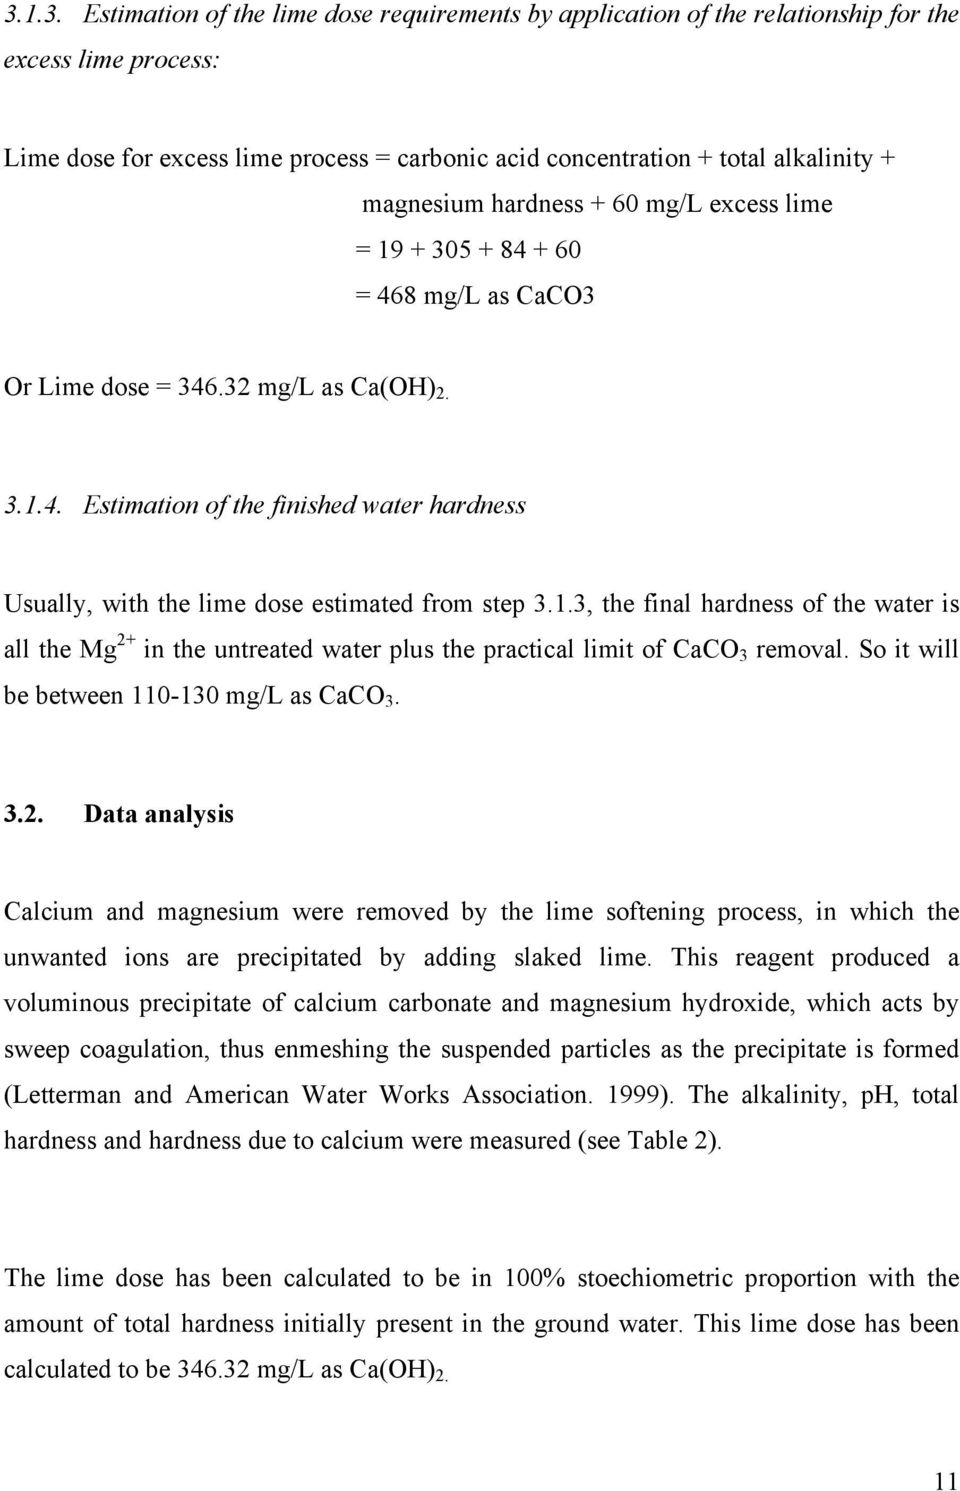 1.3, the final hardness of the water is all the Mg 2+ in the untreated water plus the practical limit of CaCO 3 removal. So it will be between 110-130 mg/l as CaCO 3. 3.2. Data analysis Calcium and magnesium were removed by the lime softening process, in which the unwanted ions are precipitated by adding slaked lime.